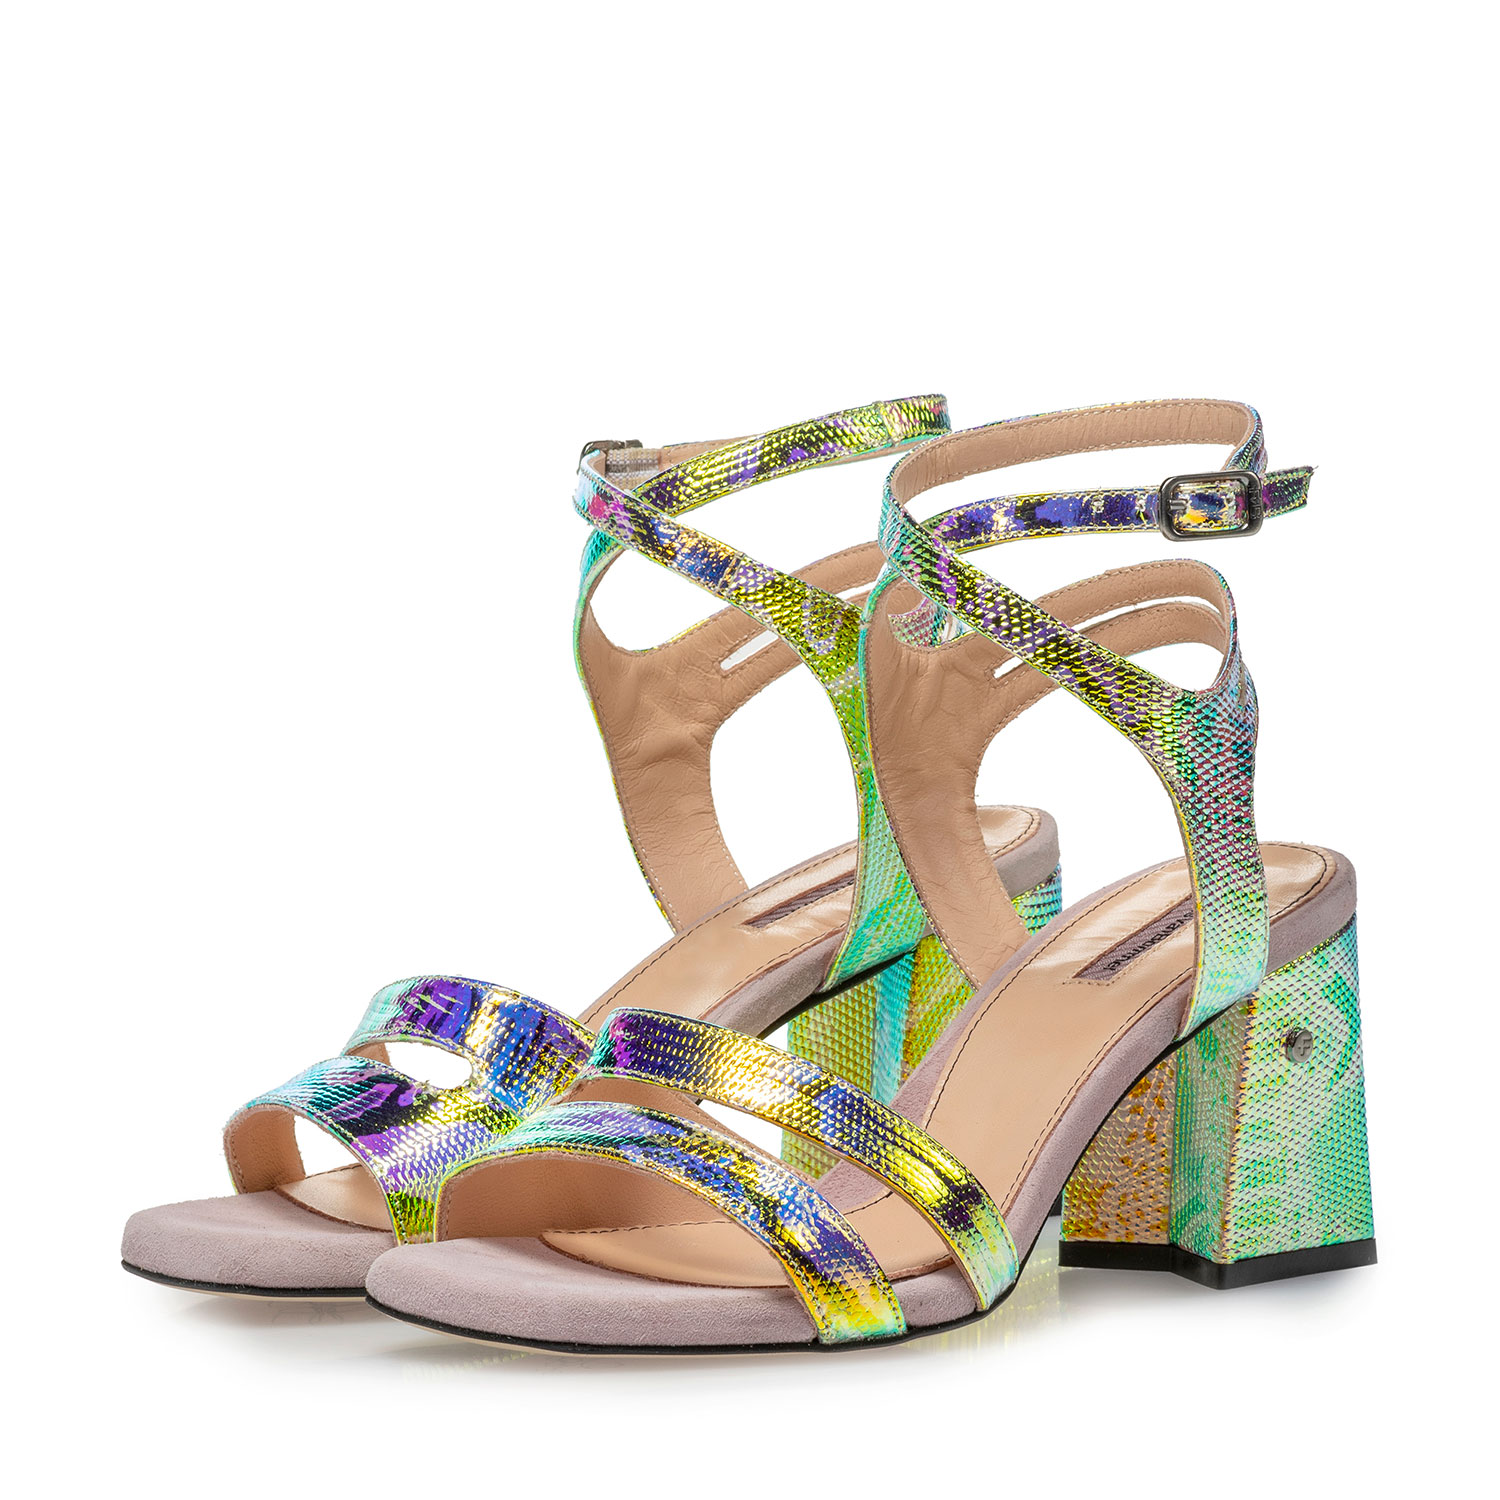 85943/00 - High-heeled leather sandals with green/gold metallic print